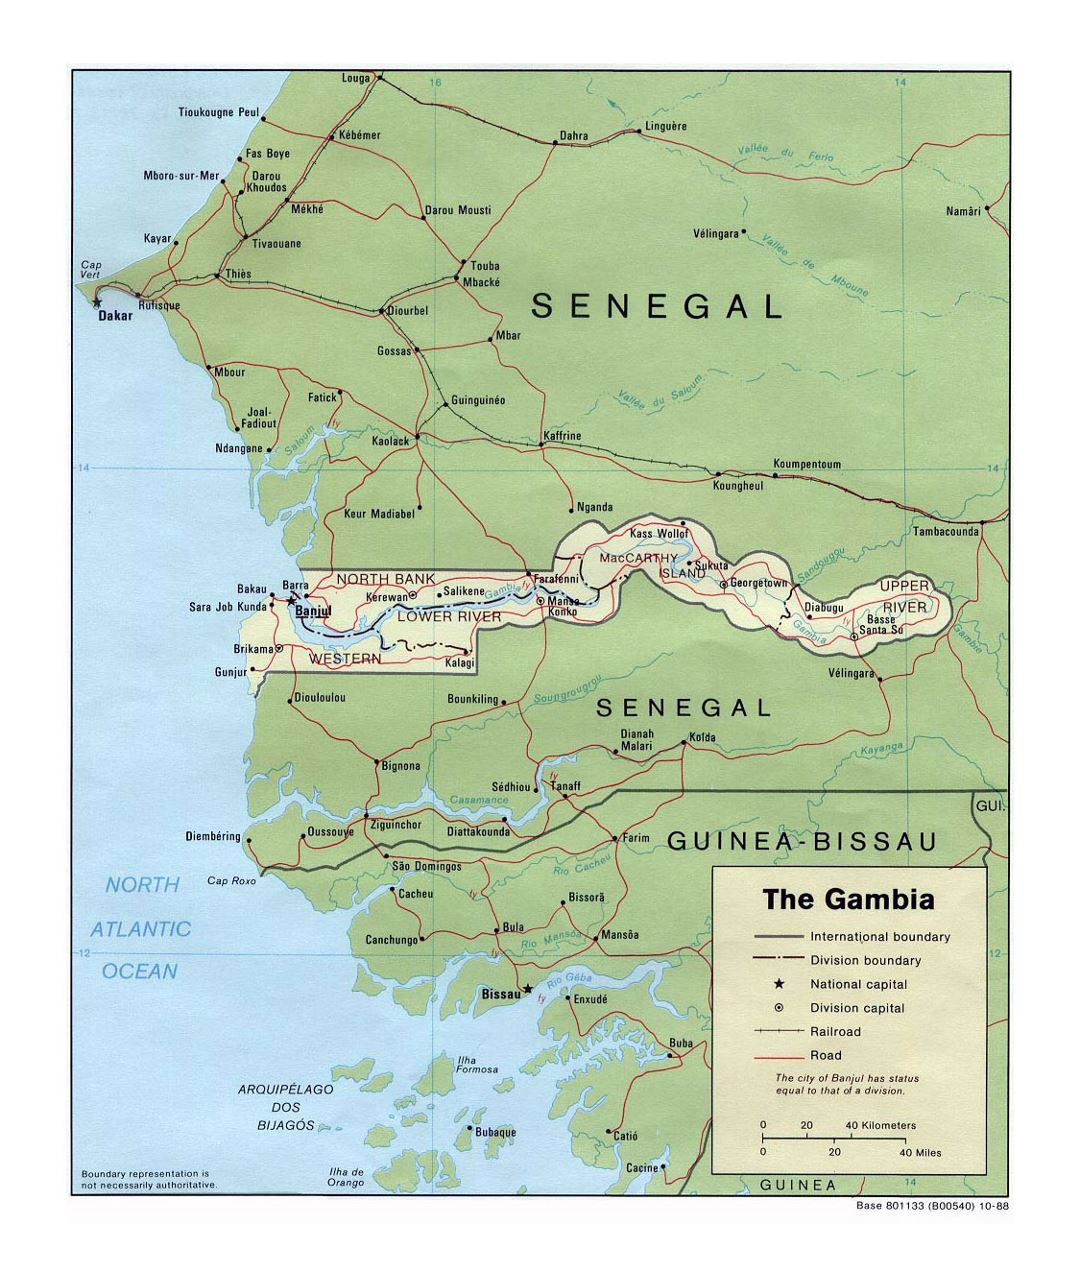 Detailed political and administrative map of Gambia with roads, railroads and major cities - 1988